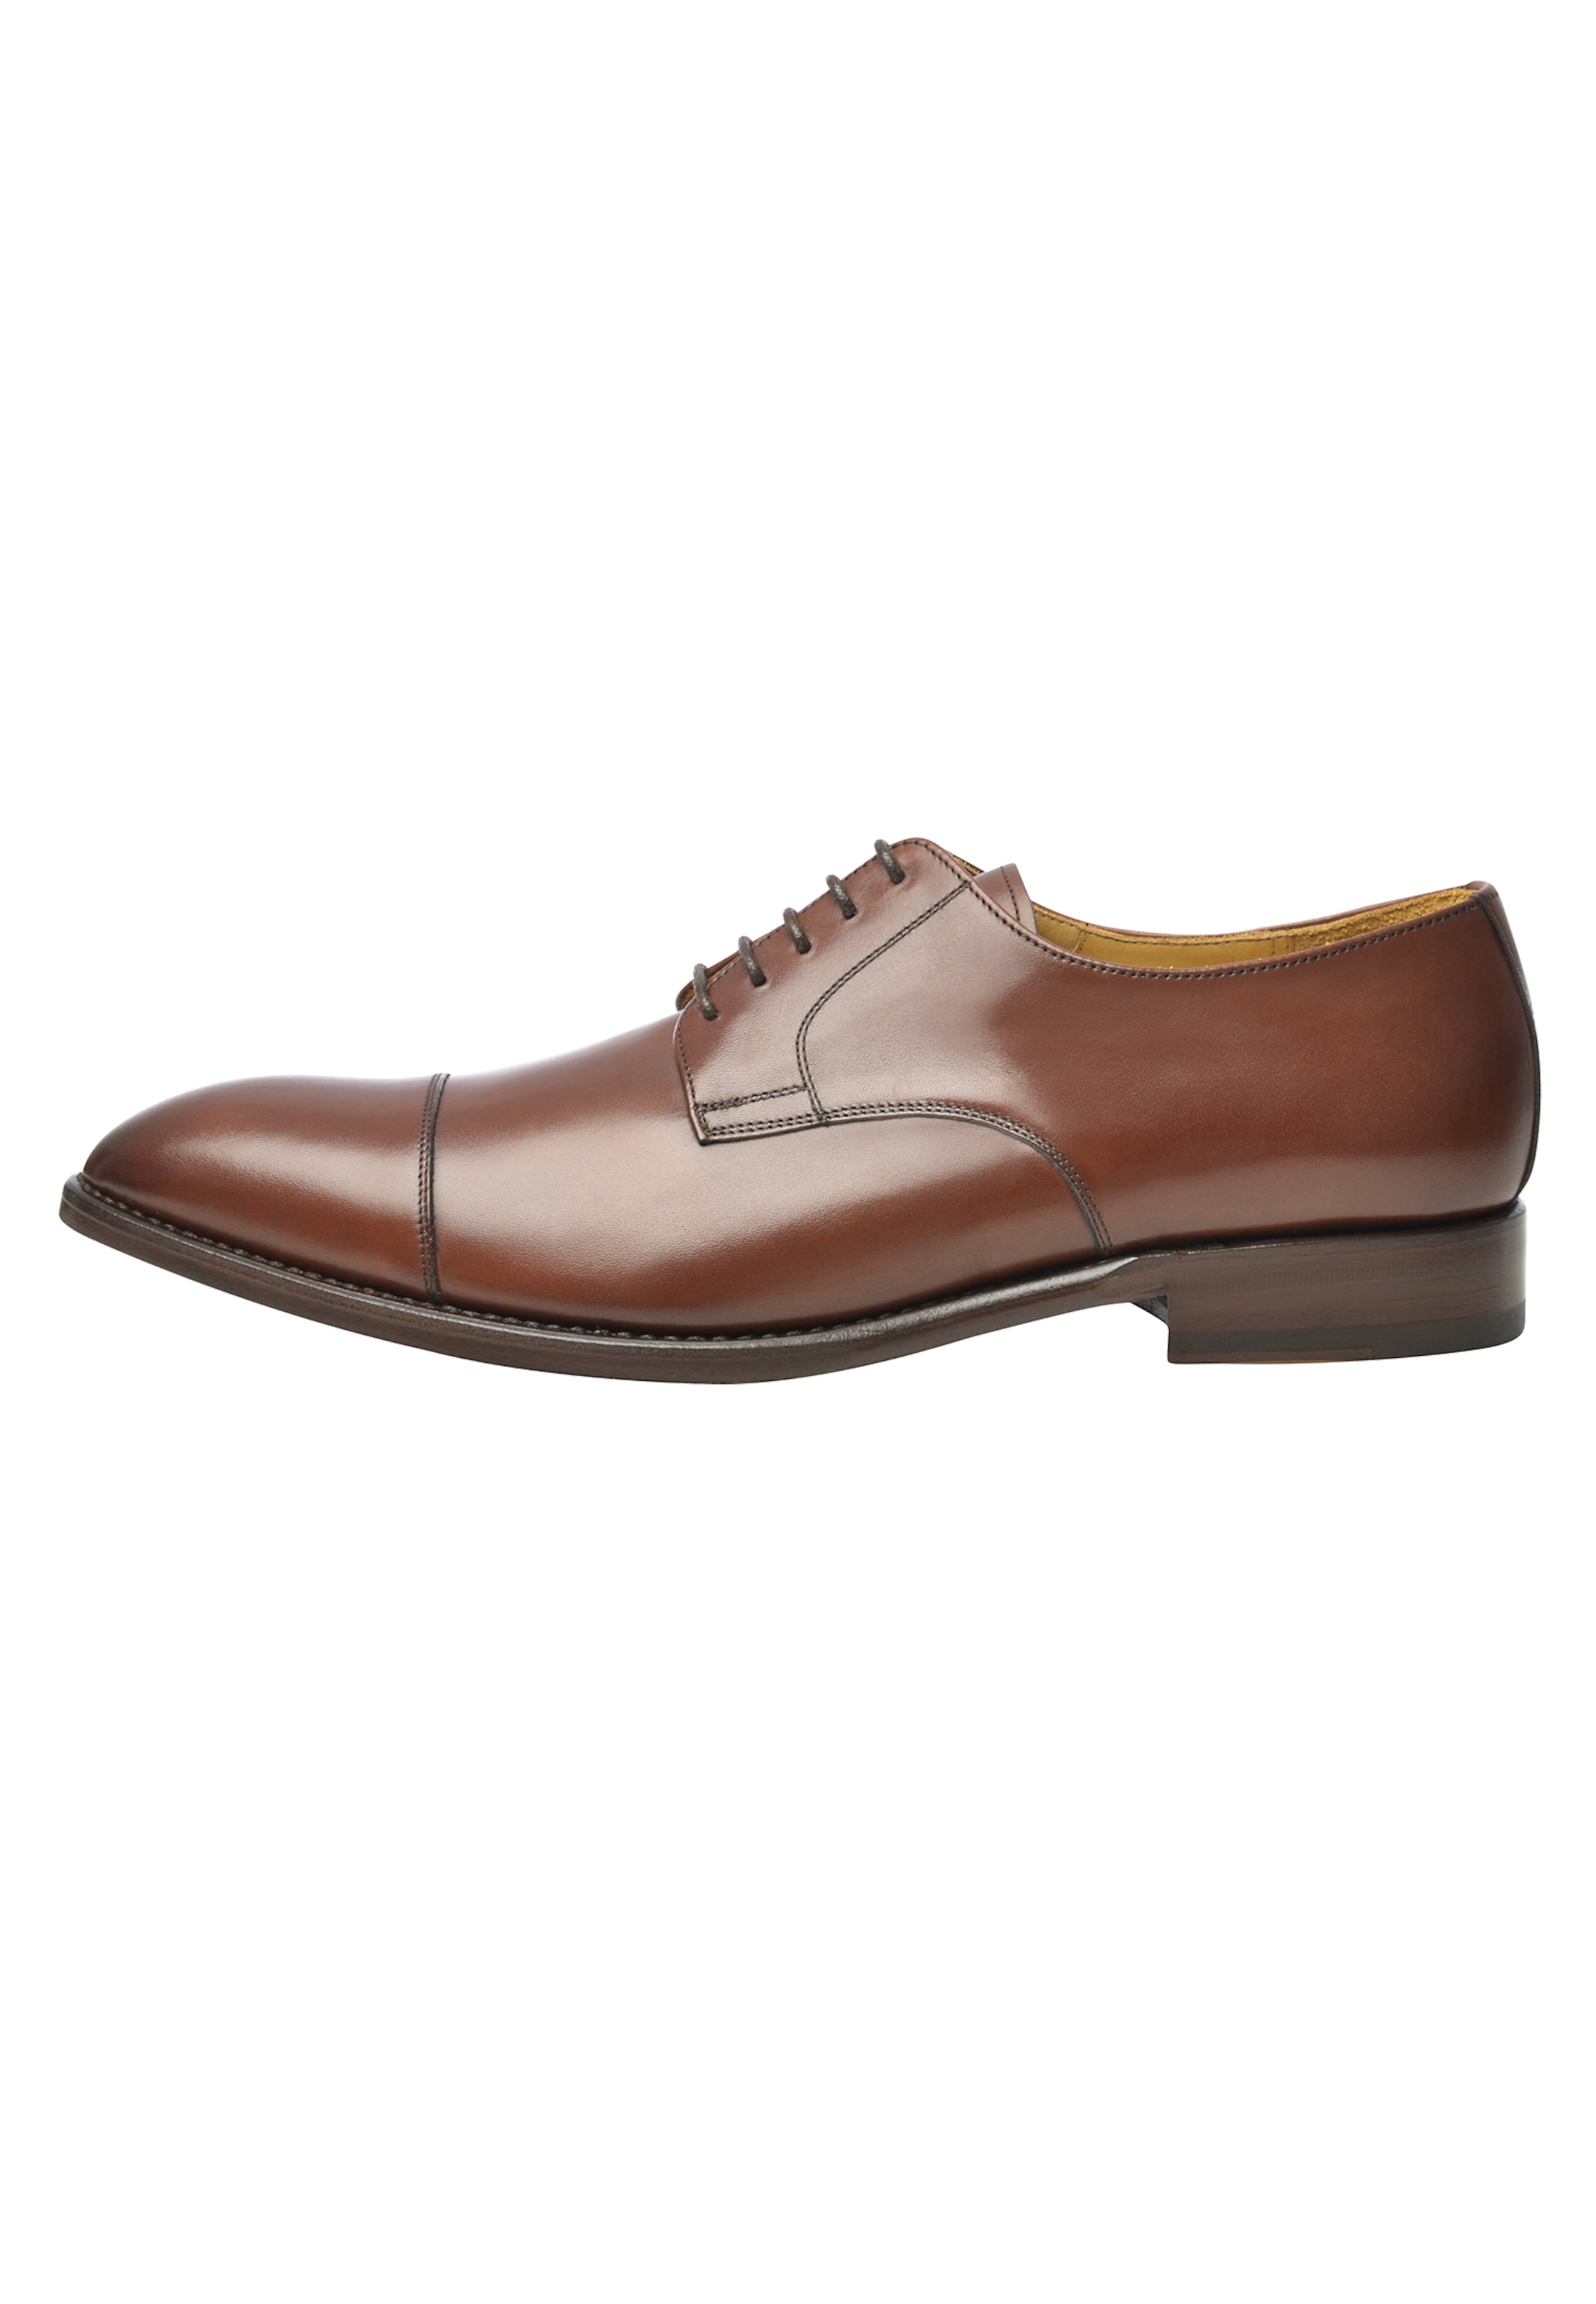 'no537' Shoepassion Shoepassion Businessschuhe Businessschuhe 'no537' In Braun eHI9Eb2WDY